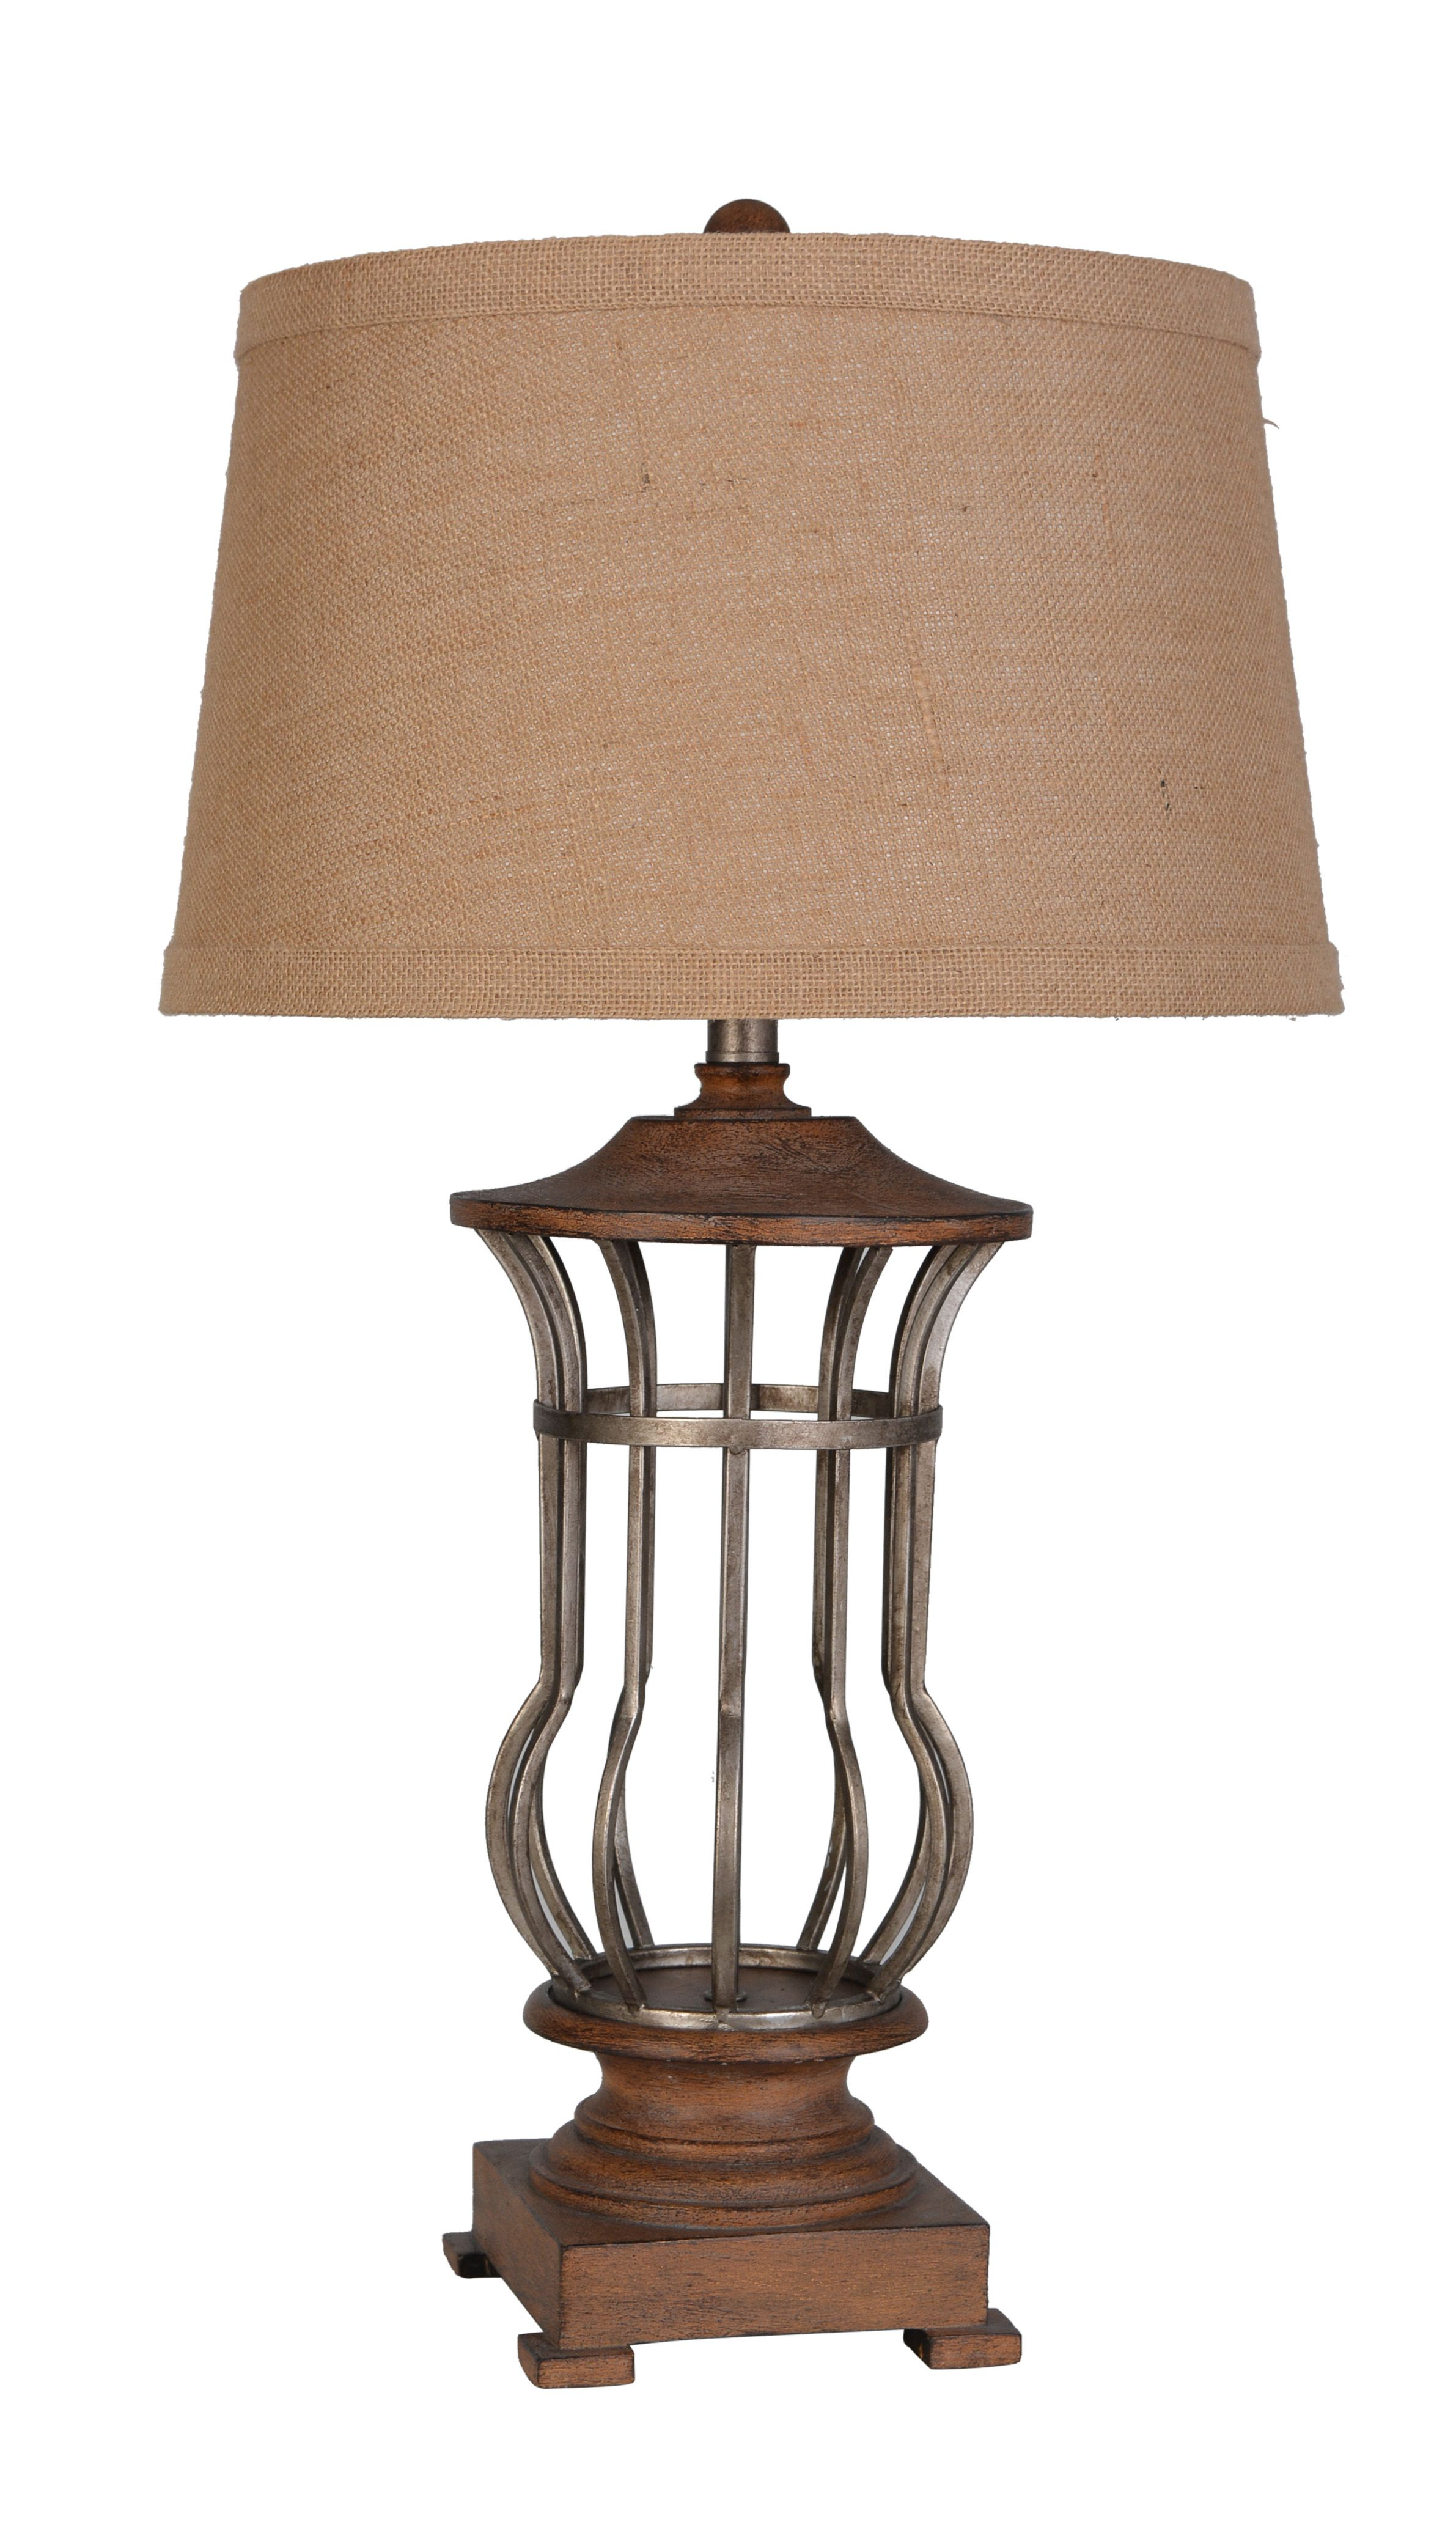 LPS 190: Metal And Polyresin Table Lamp By Lamps Per Se